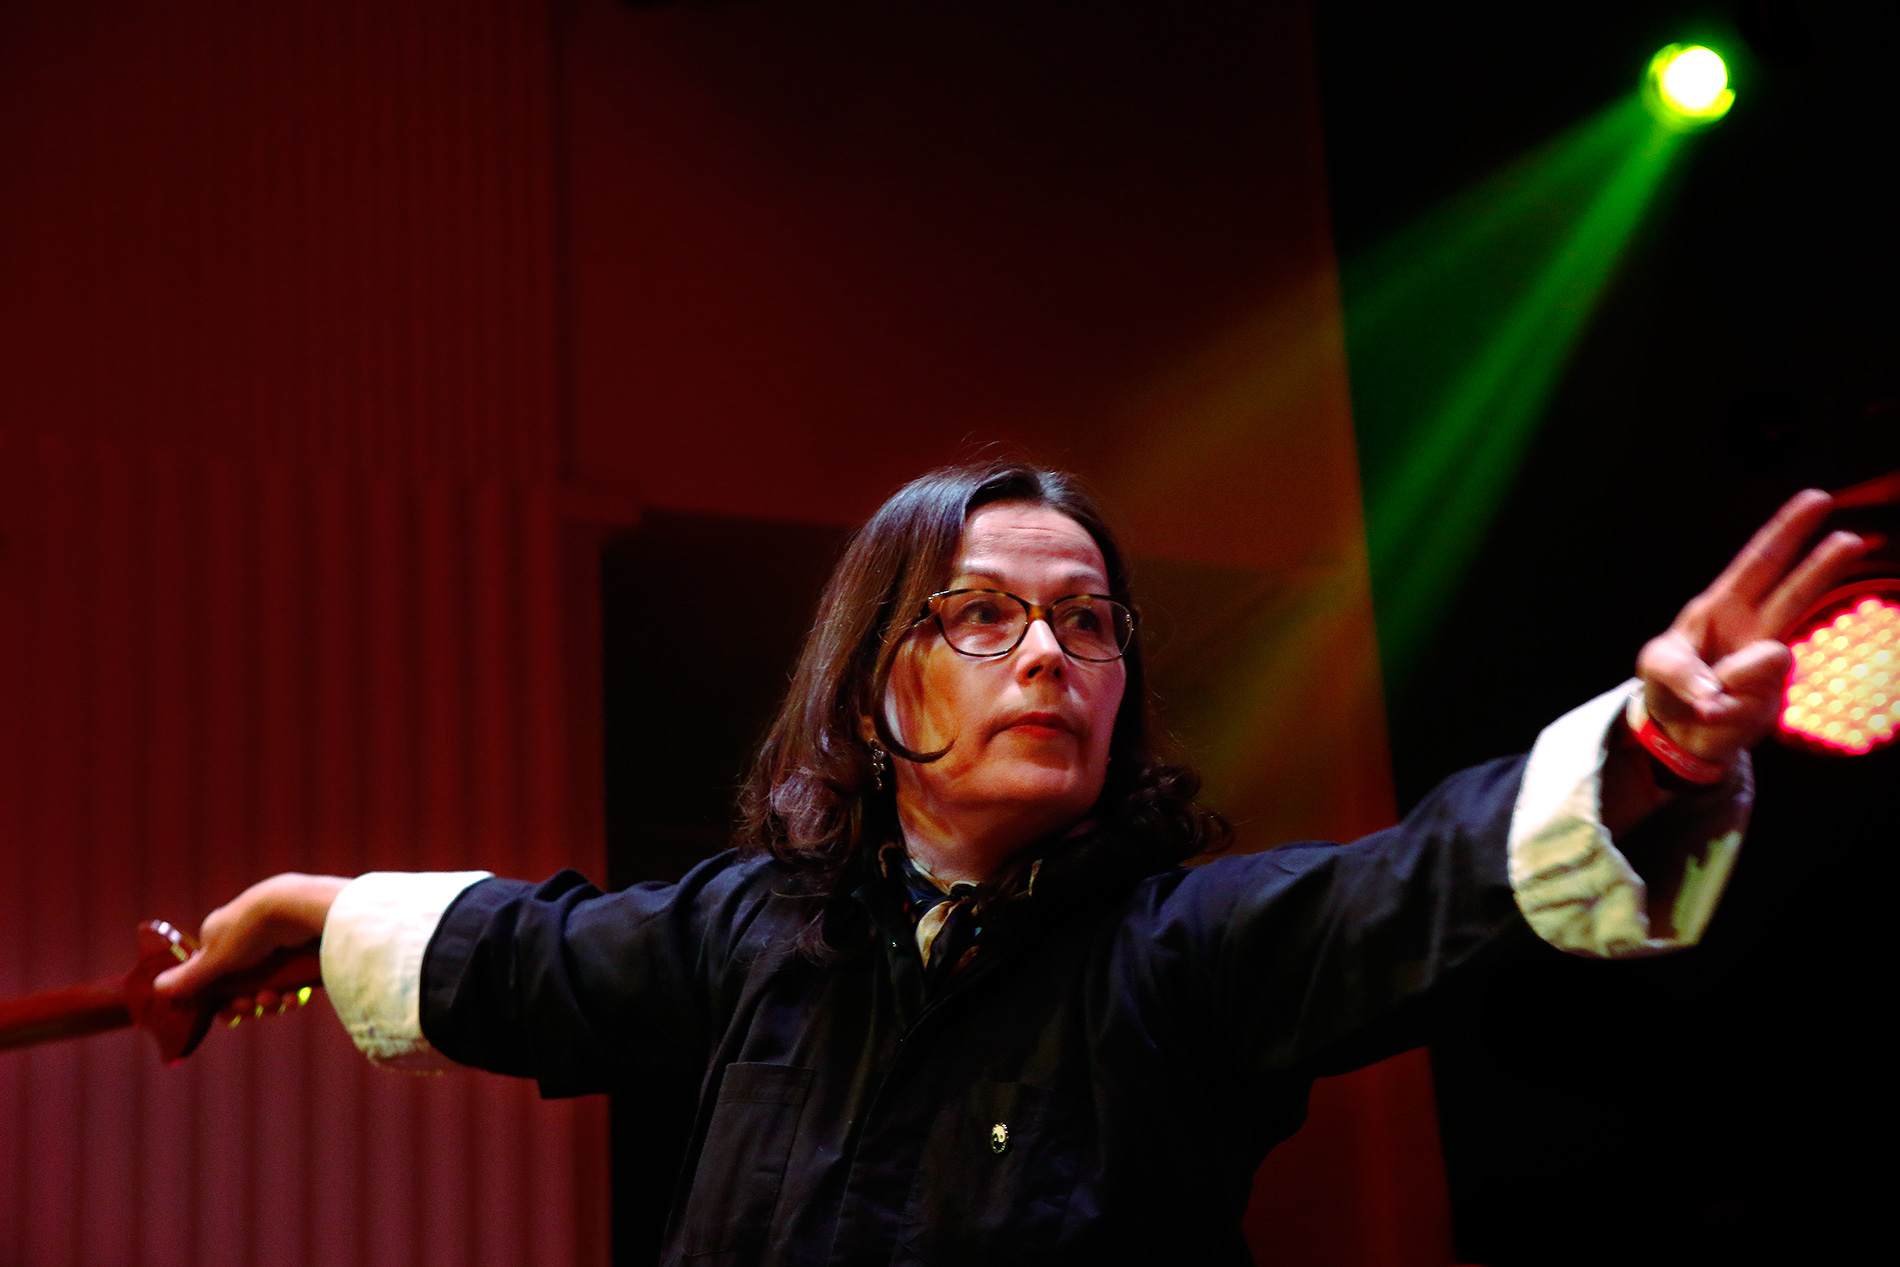 Anne Ahonen has been studying tai chi since 1996. In her hands, the wooden sword seems light like a feather. Picture: Tony Öhberg for Finland Today